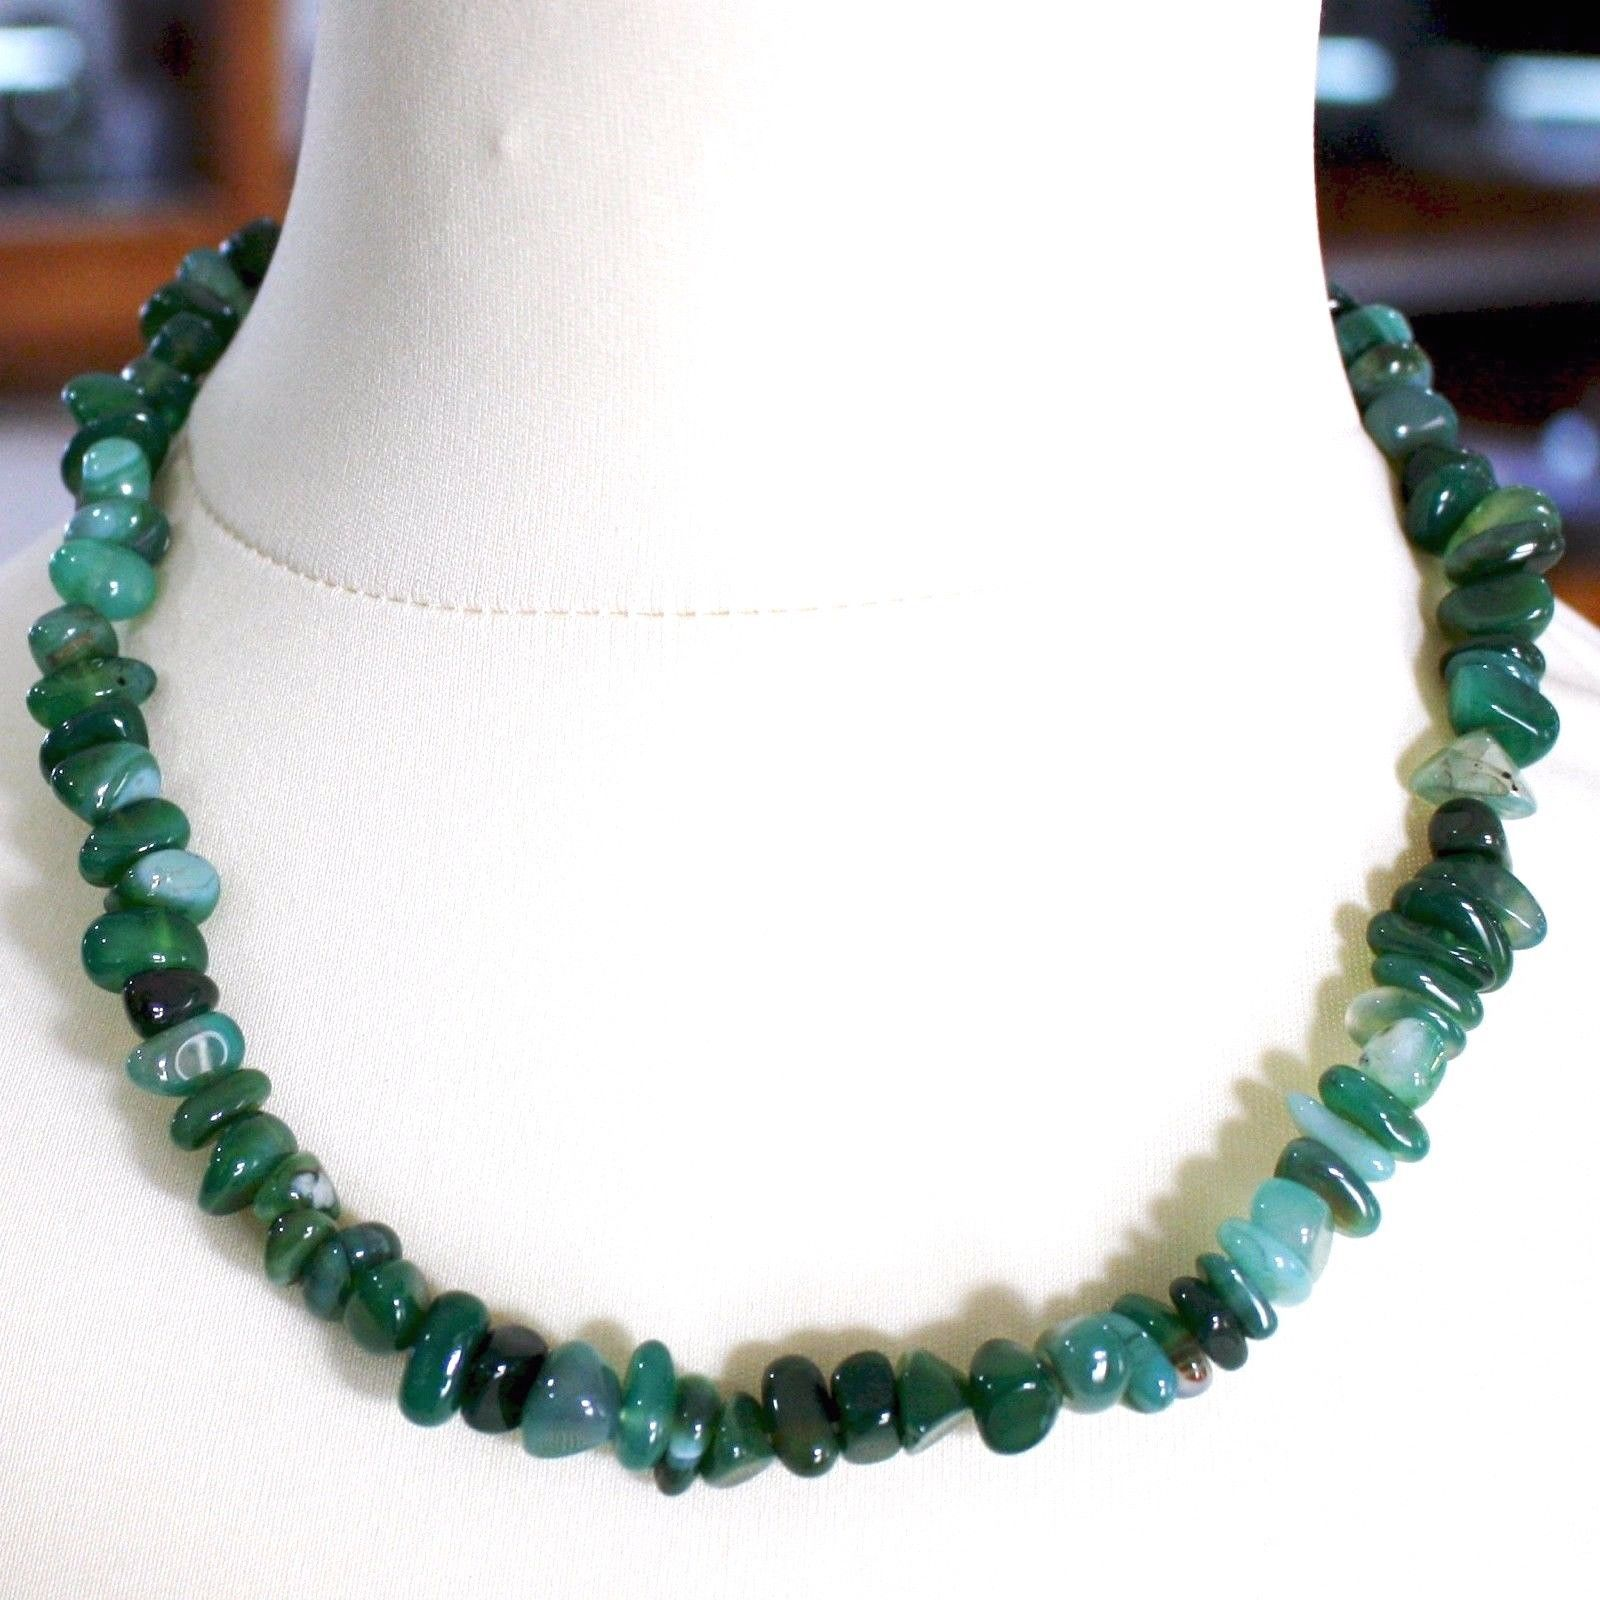 925 Silver Necklace with Agate Green Striated, 50 or 75 cm length